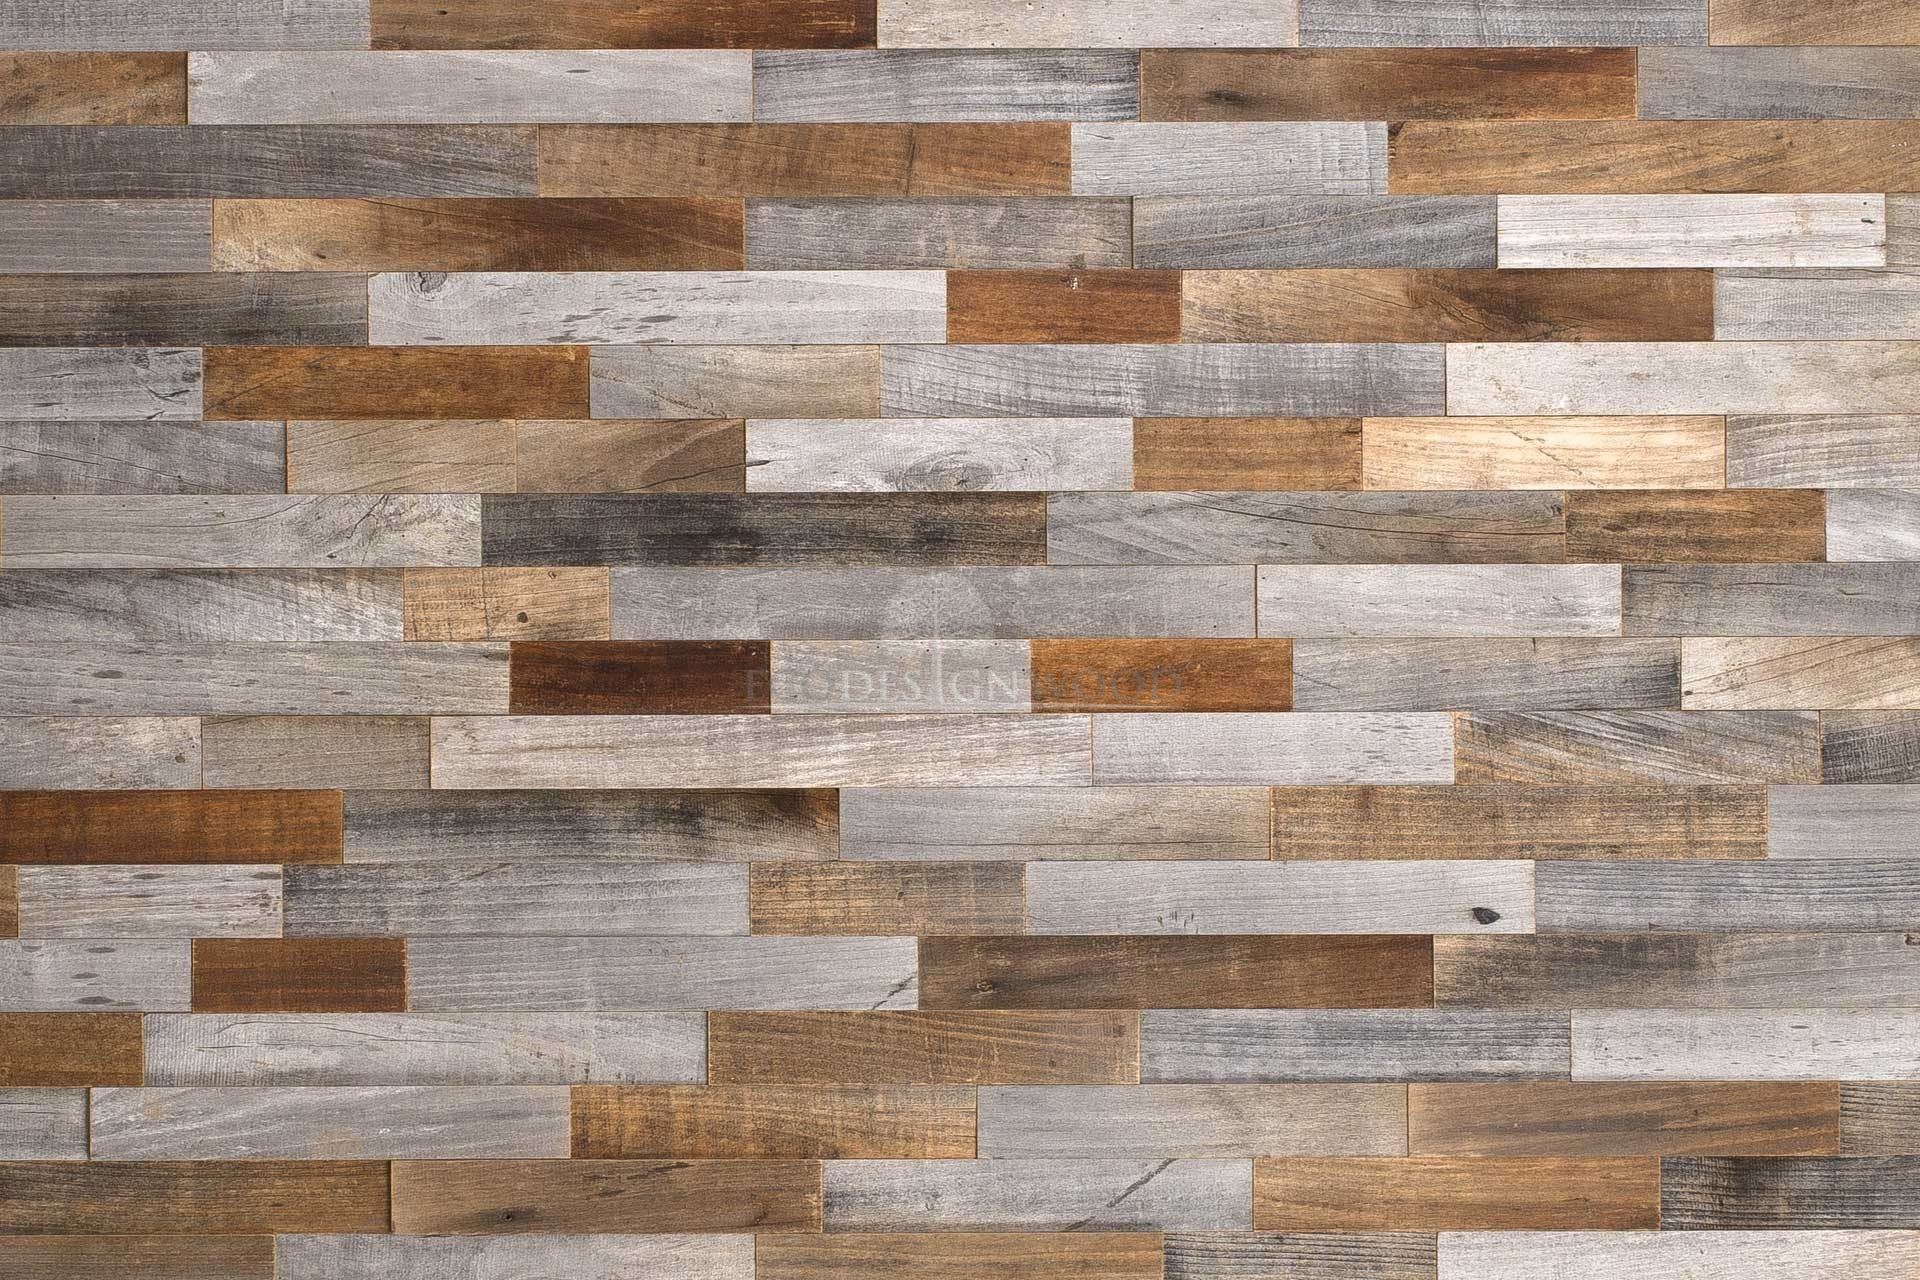 New York Ecodesignwood Reclaimed Wood Wall Panels